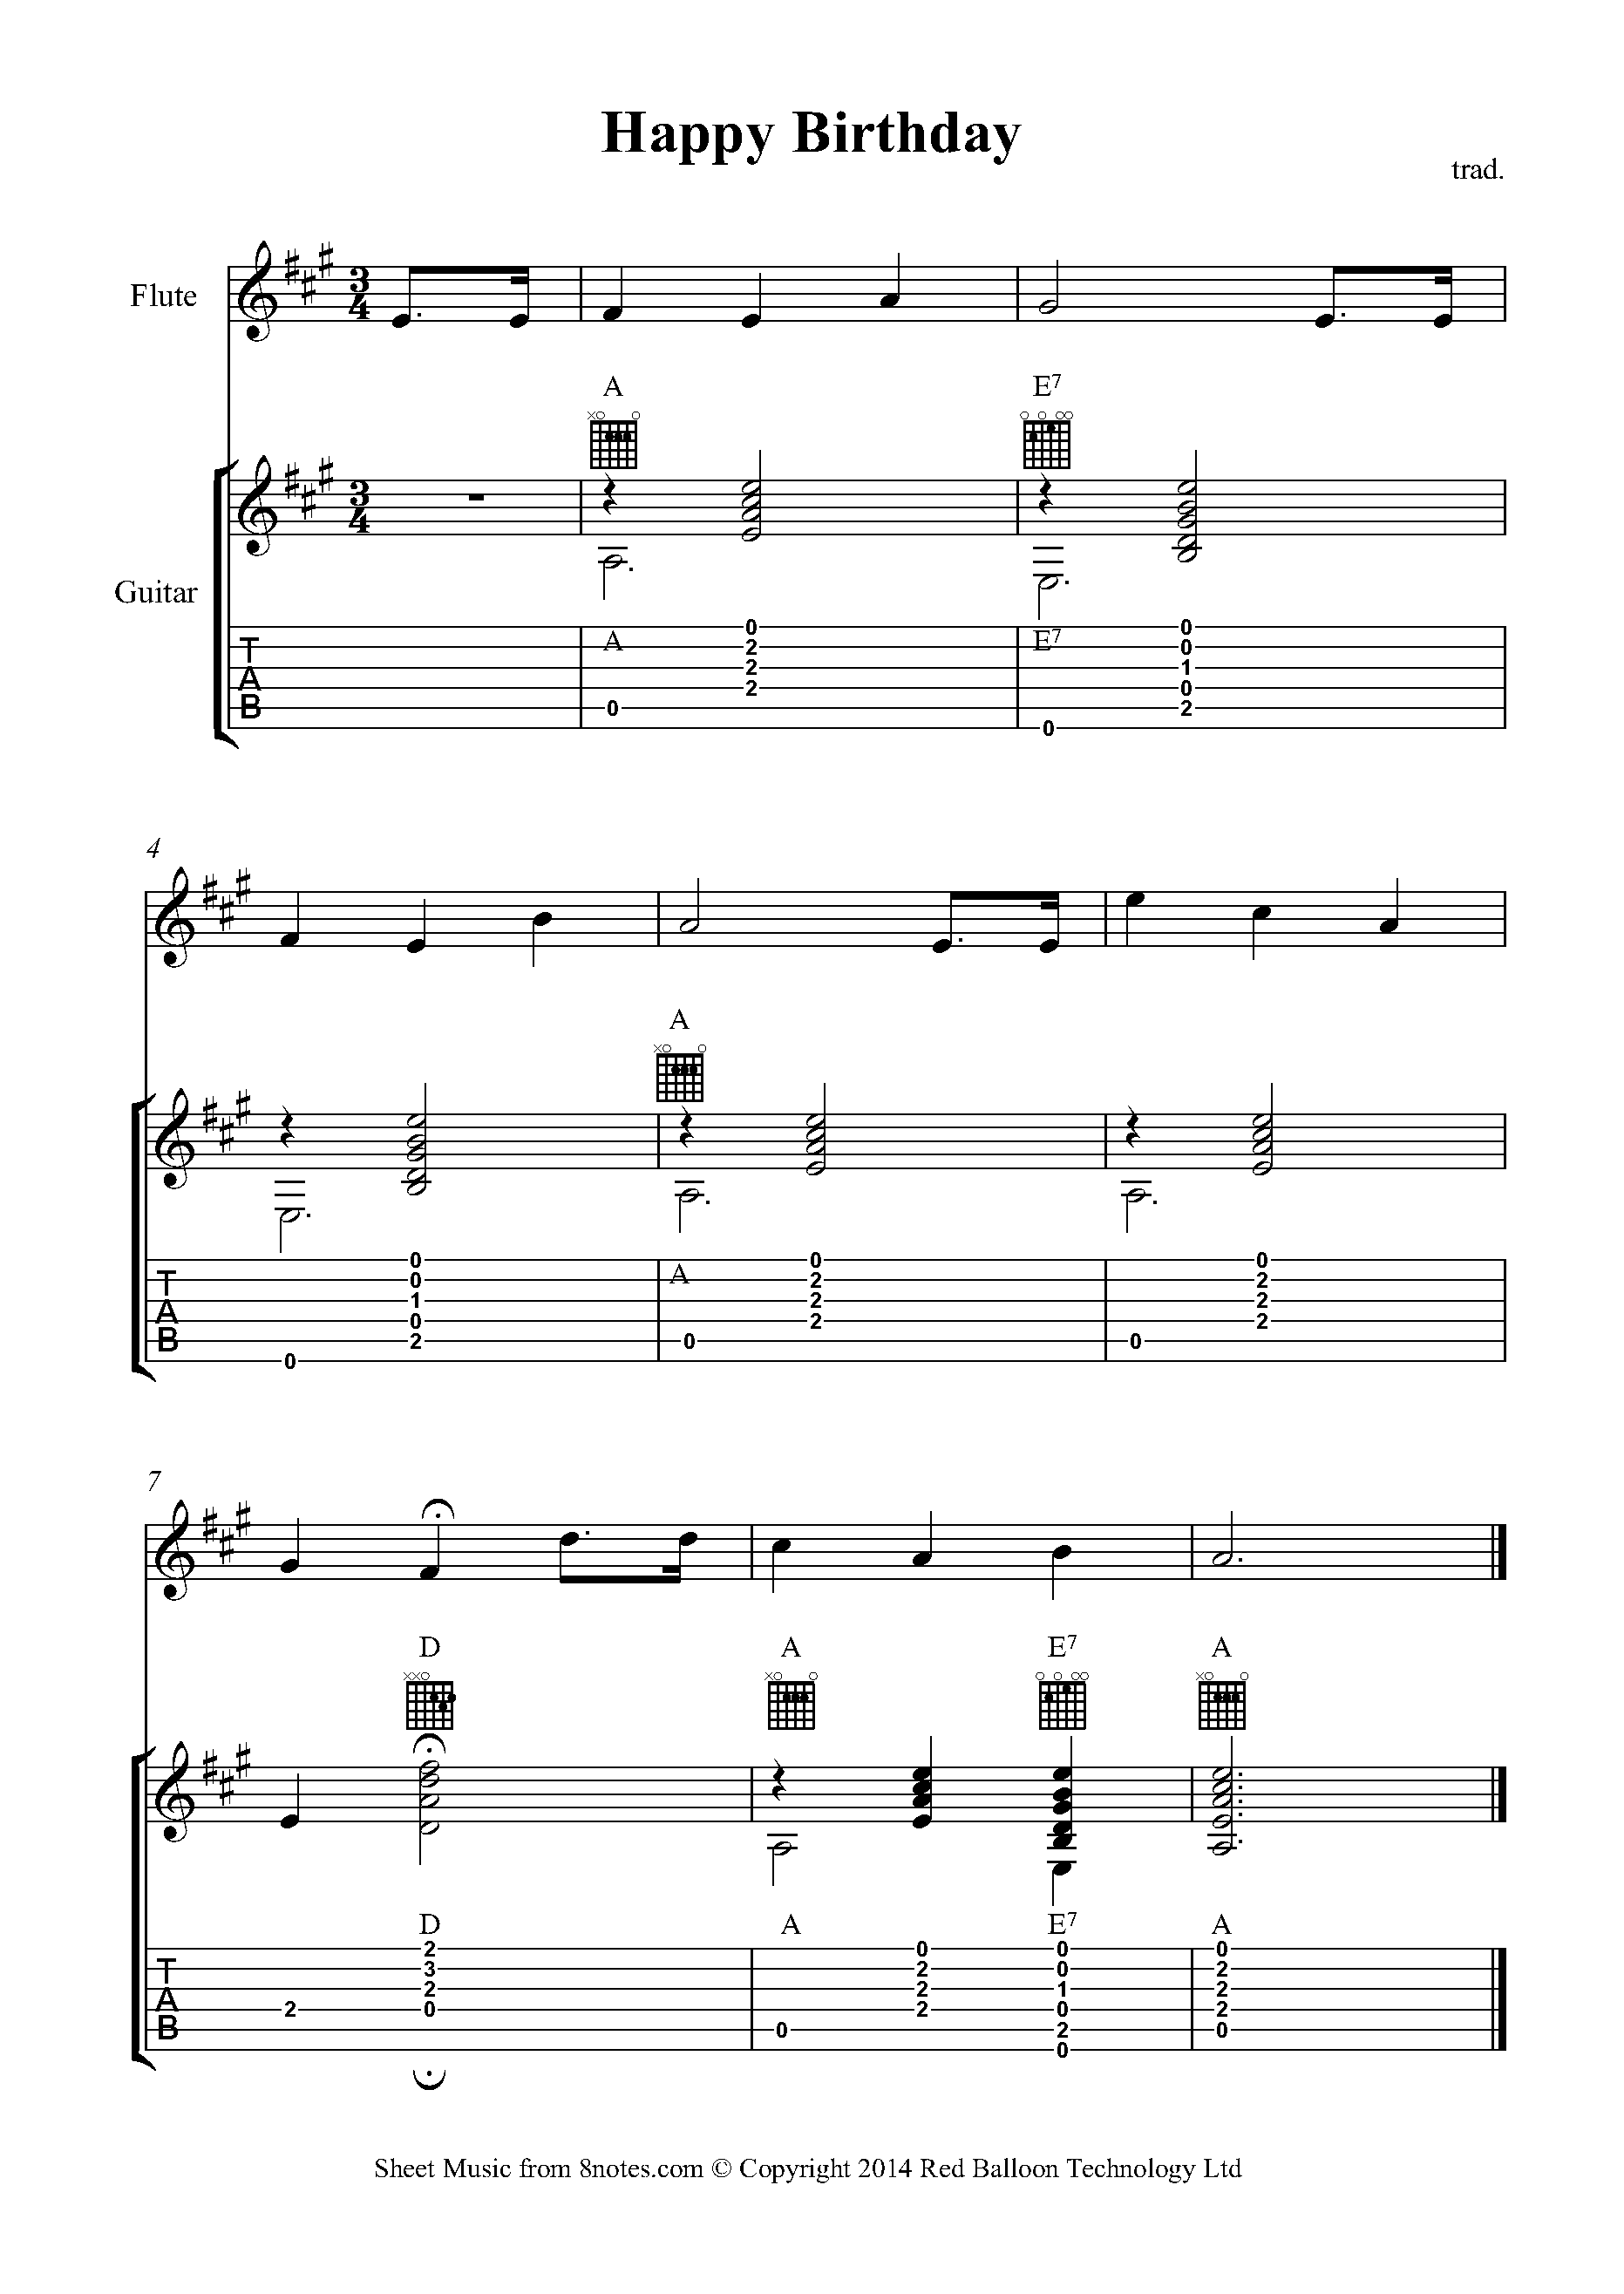 Happy Birthday To You Sheet Music For Guitar Flute Duet 8notes Com